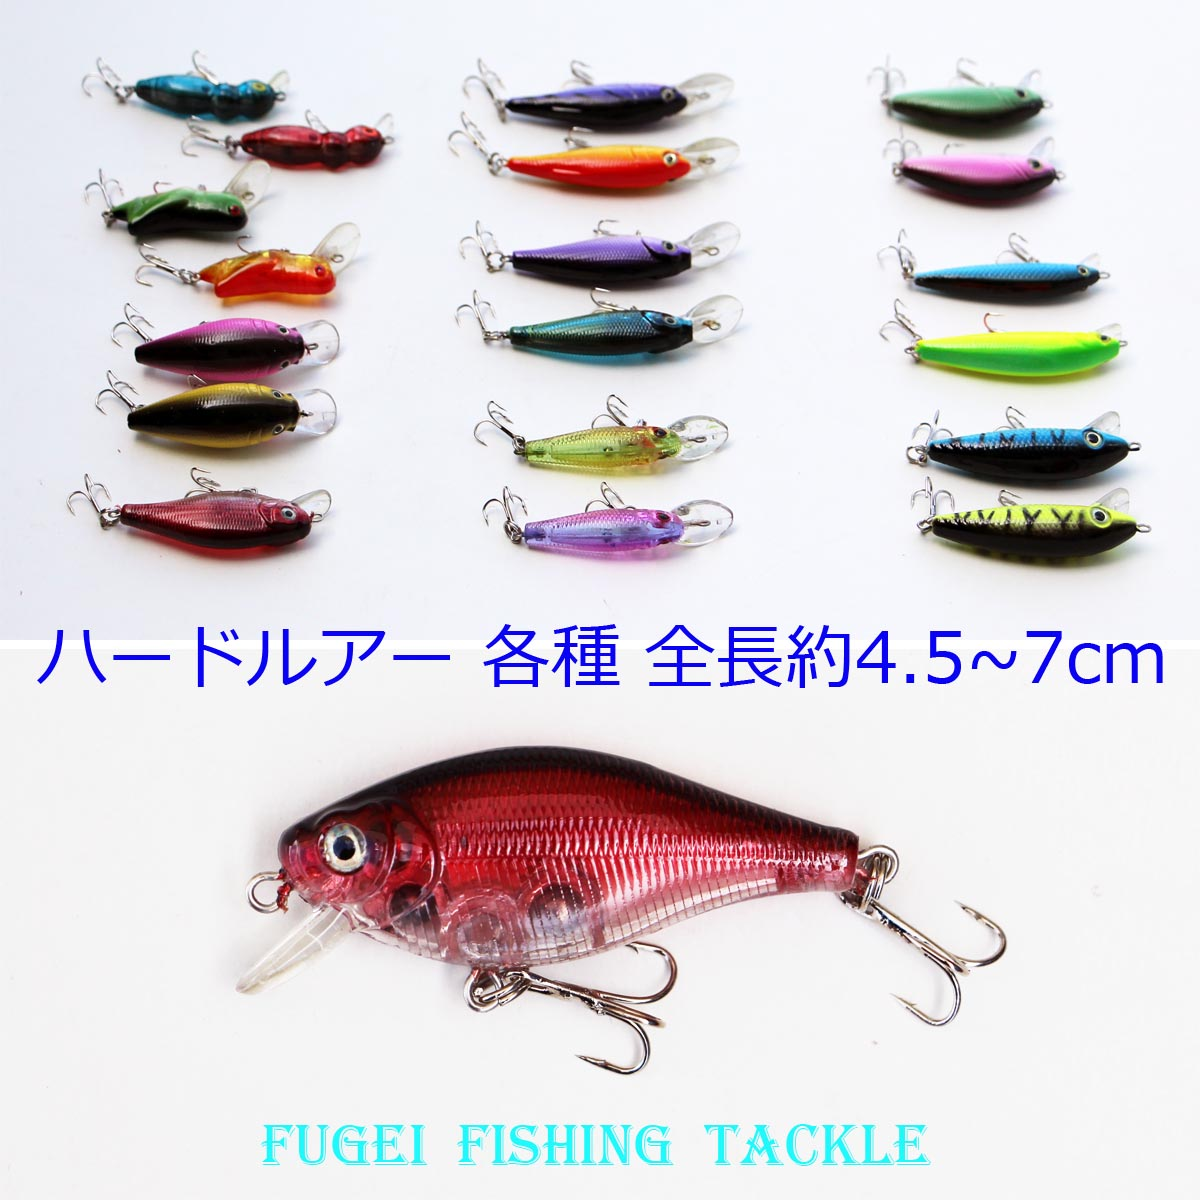 Falter lures set minnows, Shad, vibration-Popper assorted and 19 pieces  R12QS19D bass fishing